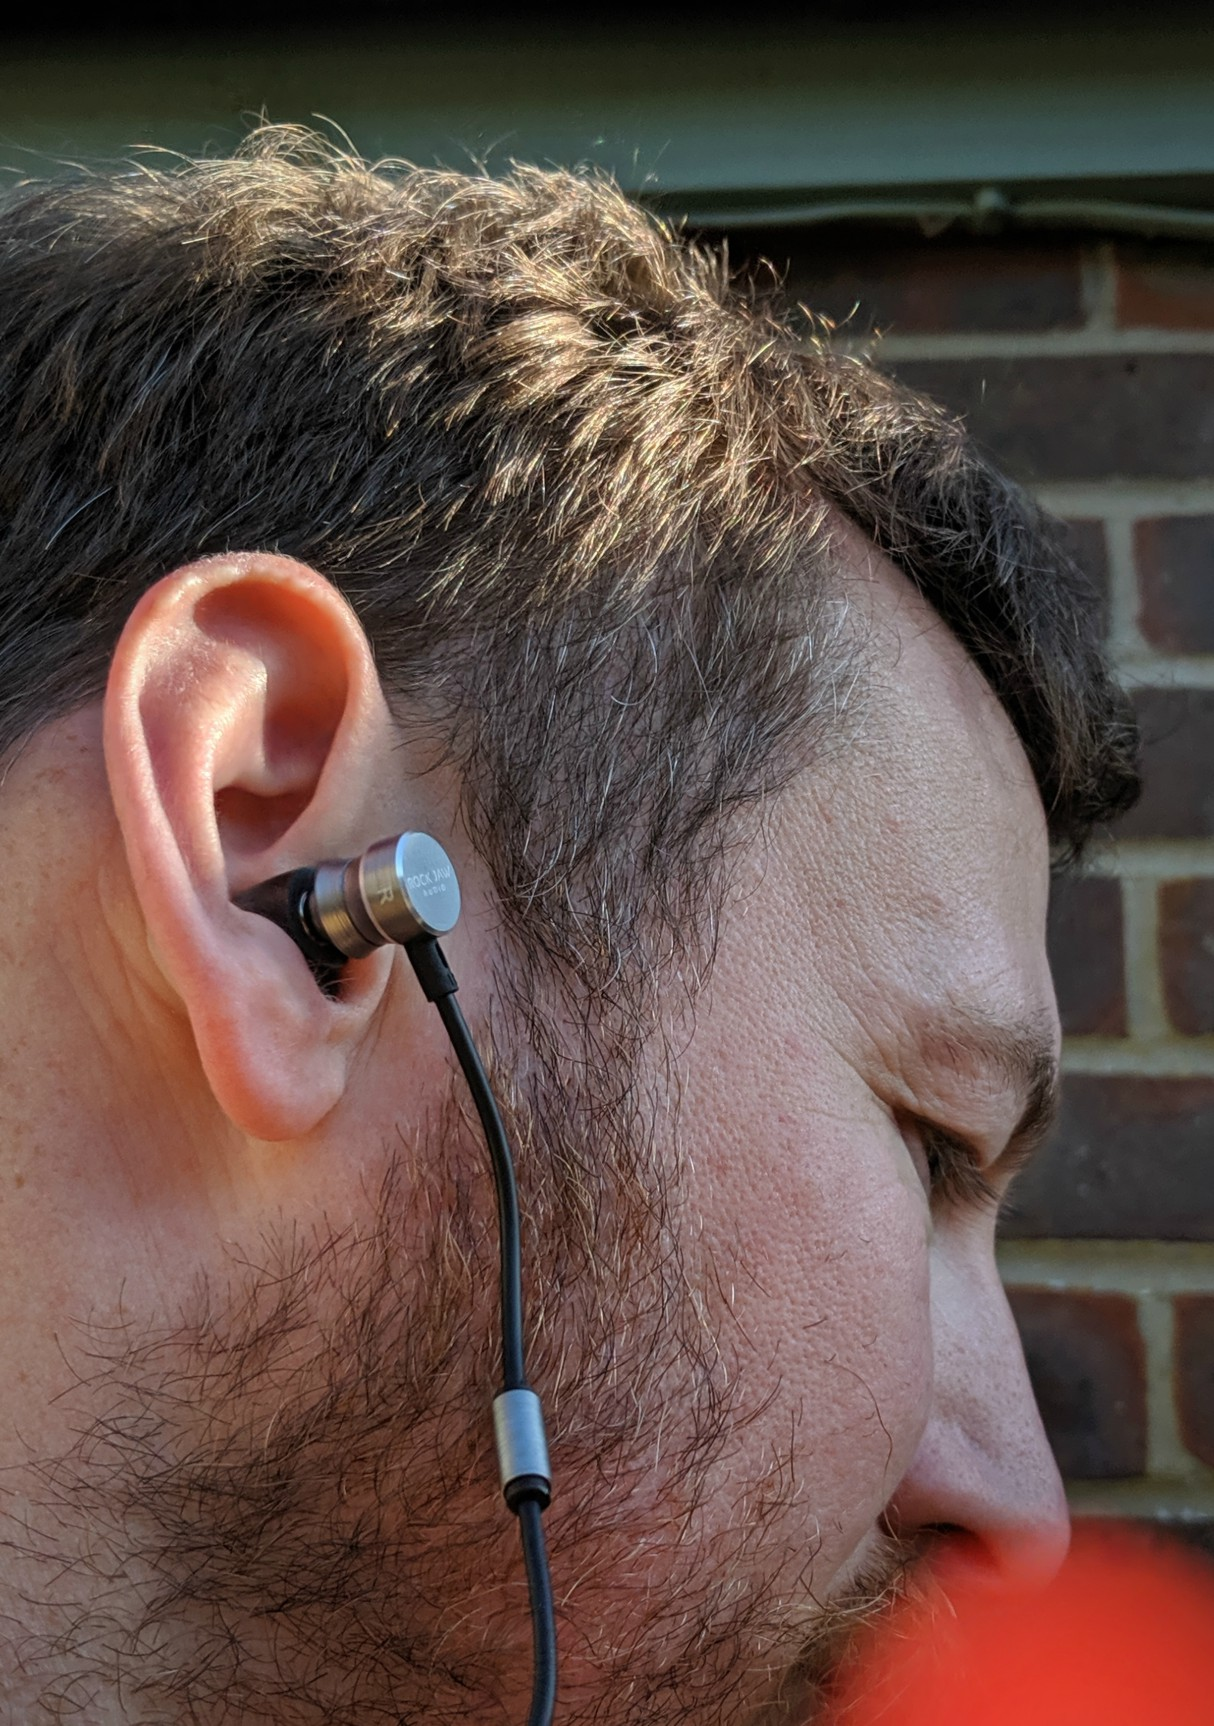 rock-jaw-audio-t5-ultra-connect-earphones-review-2